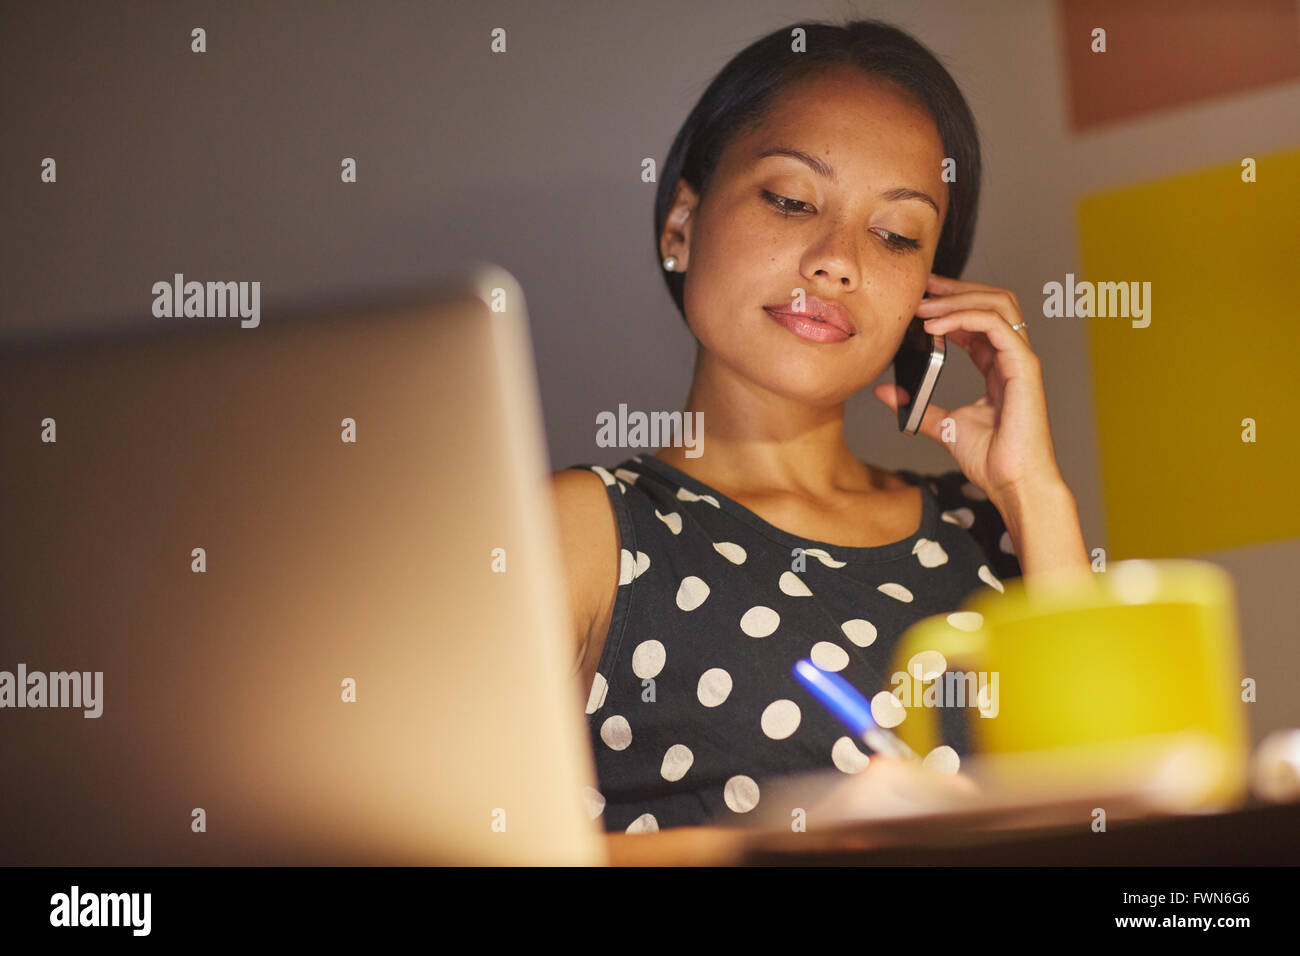 Late nights at work get the job done - Stock Image